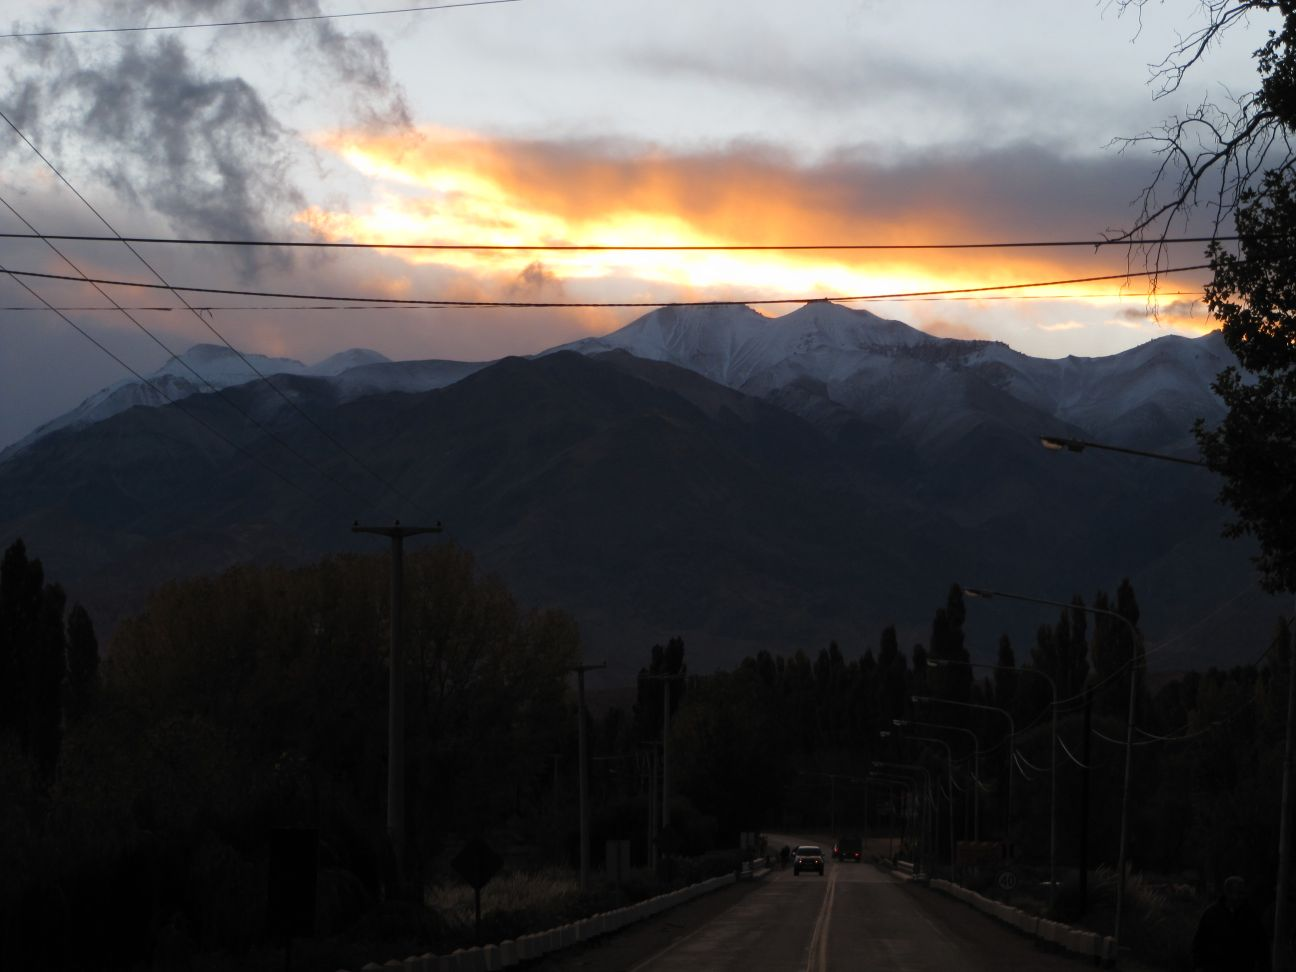 Sundown over the Andes in Uspallata